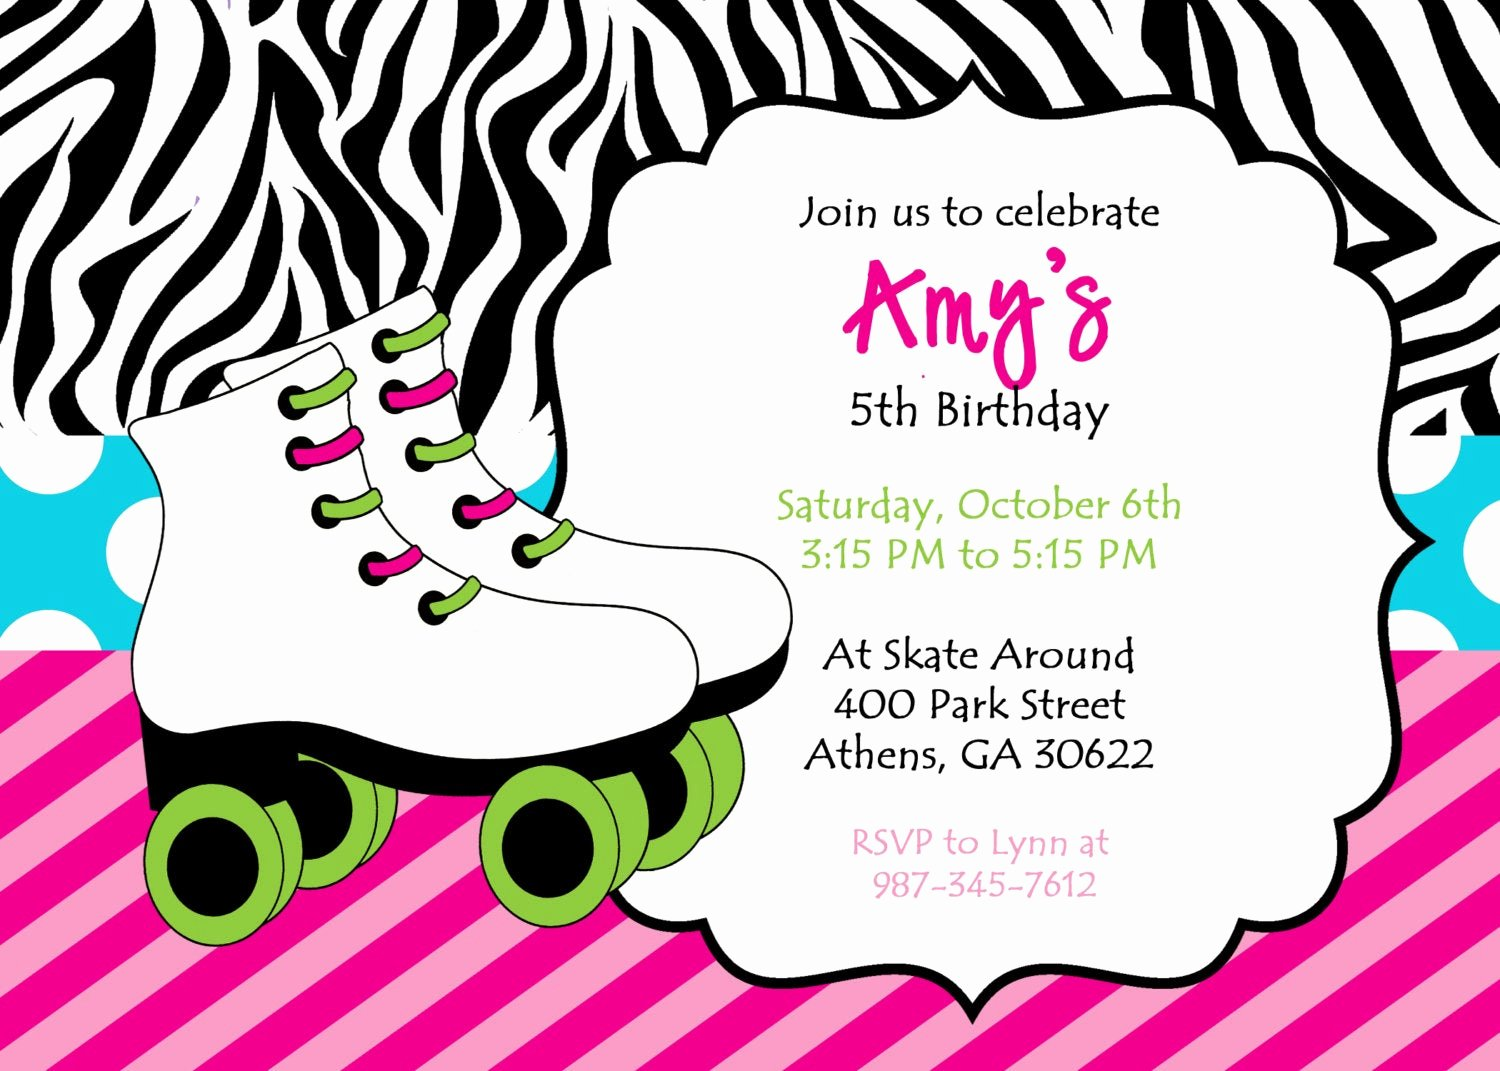 Free Printable Skating Party Invitations Fresh Diy Printable Skating Party Invitation Zebra Print Skate